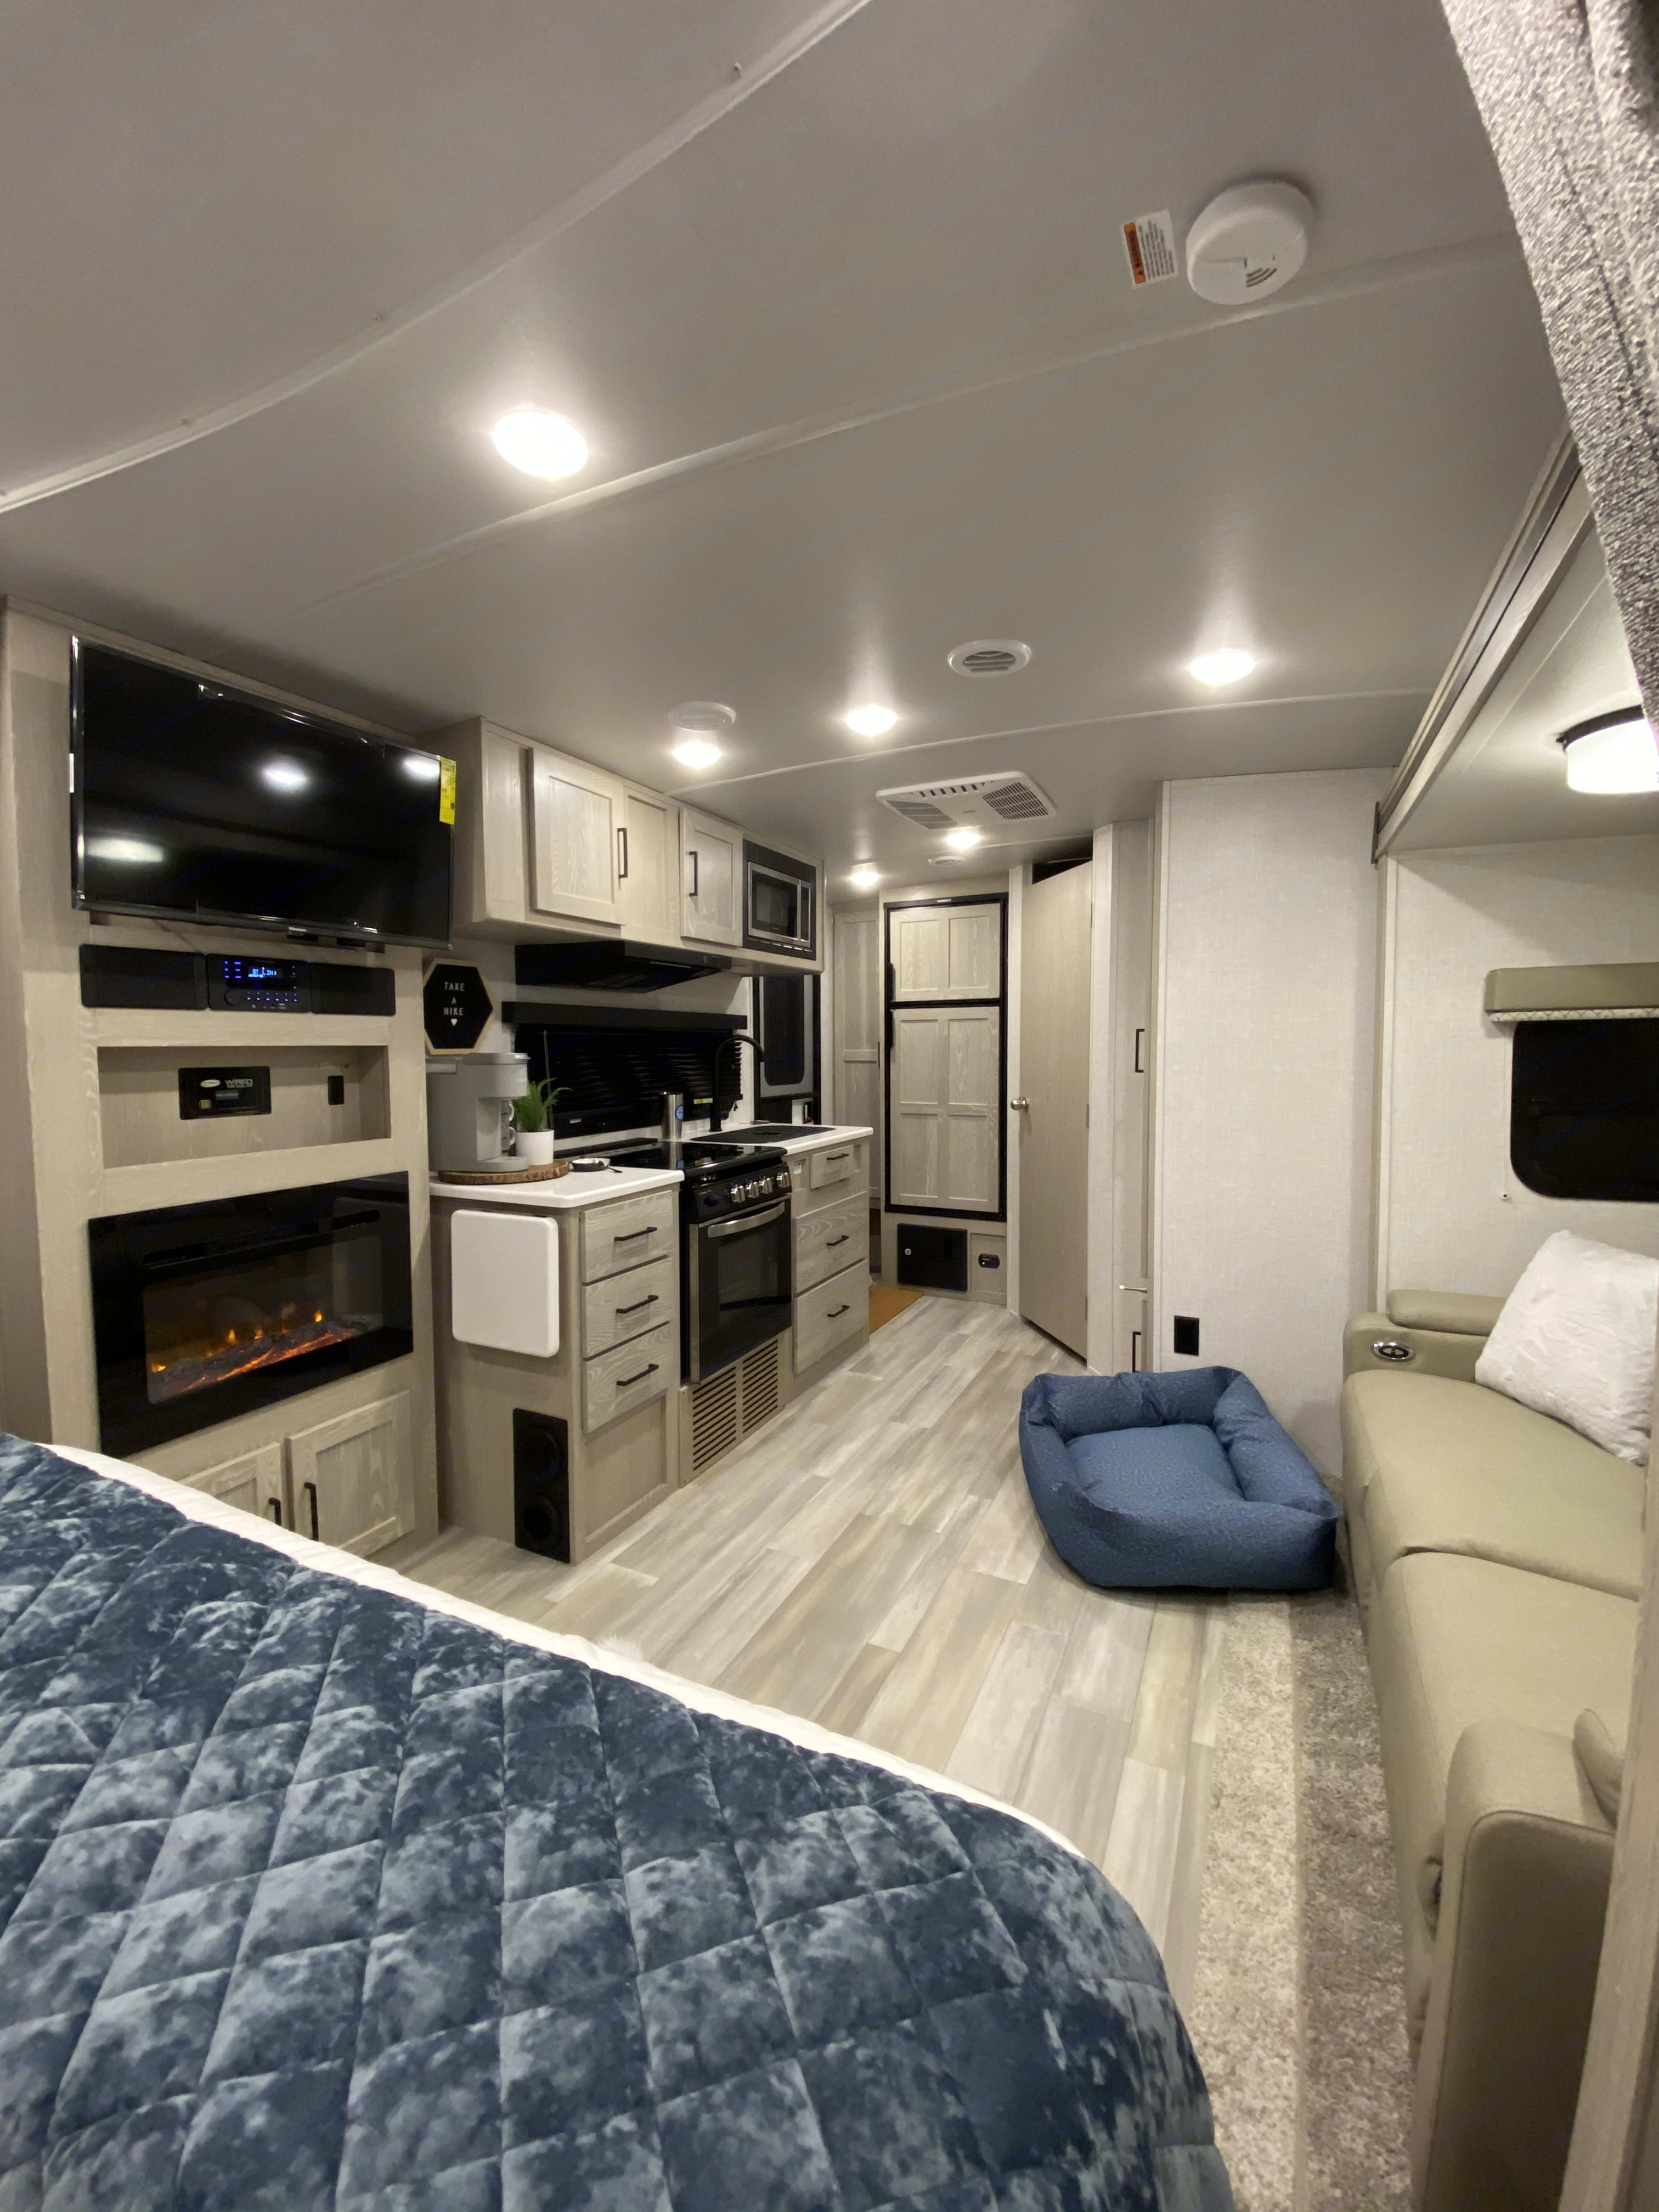 Plenty of space for your fur babies and loved ones! Great kitchen with all the essential cookware included.. Forest River Flagstaff Micro Lite 2021